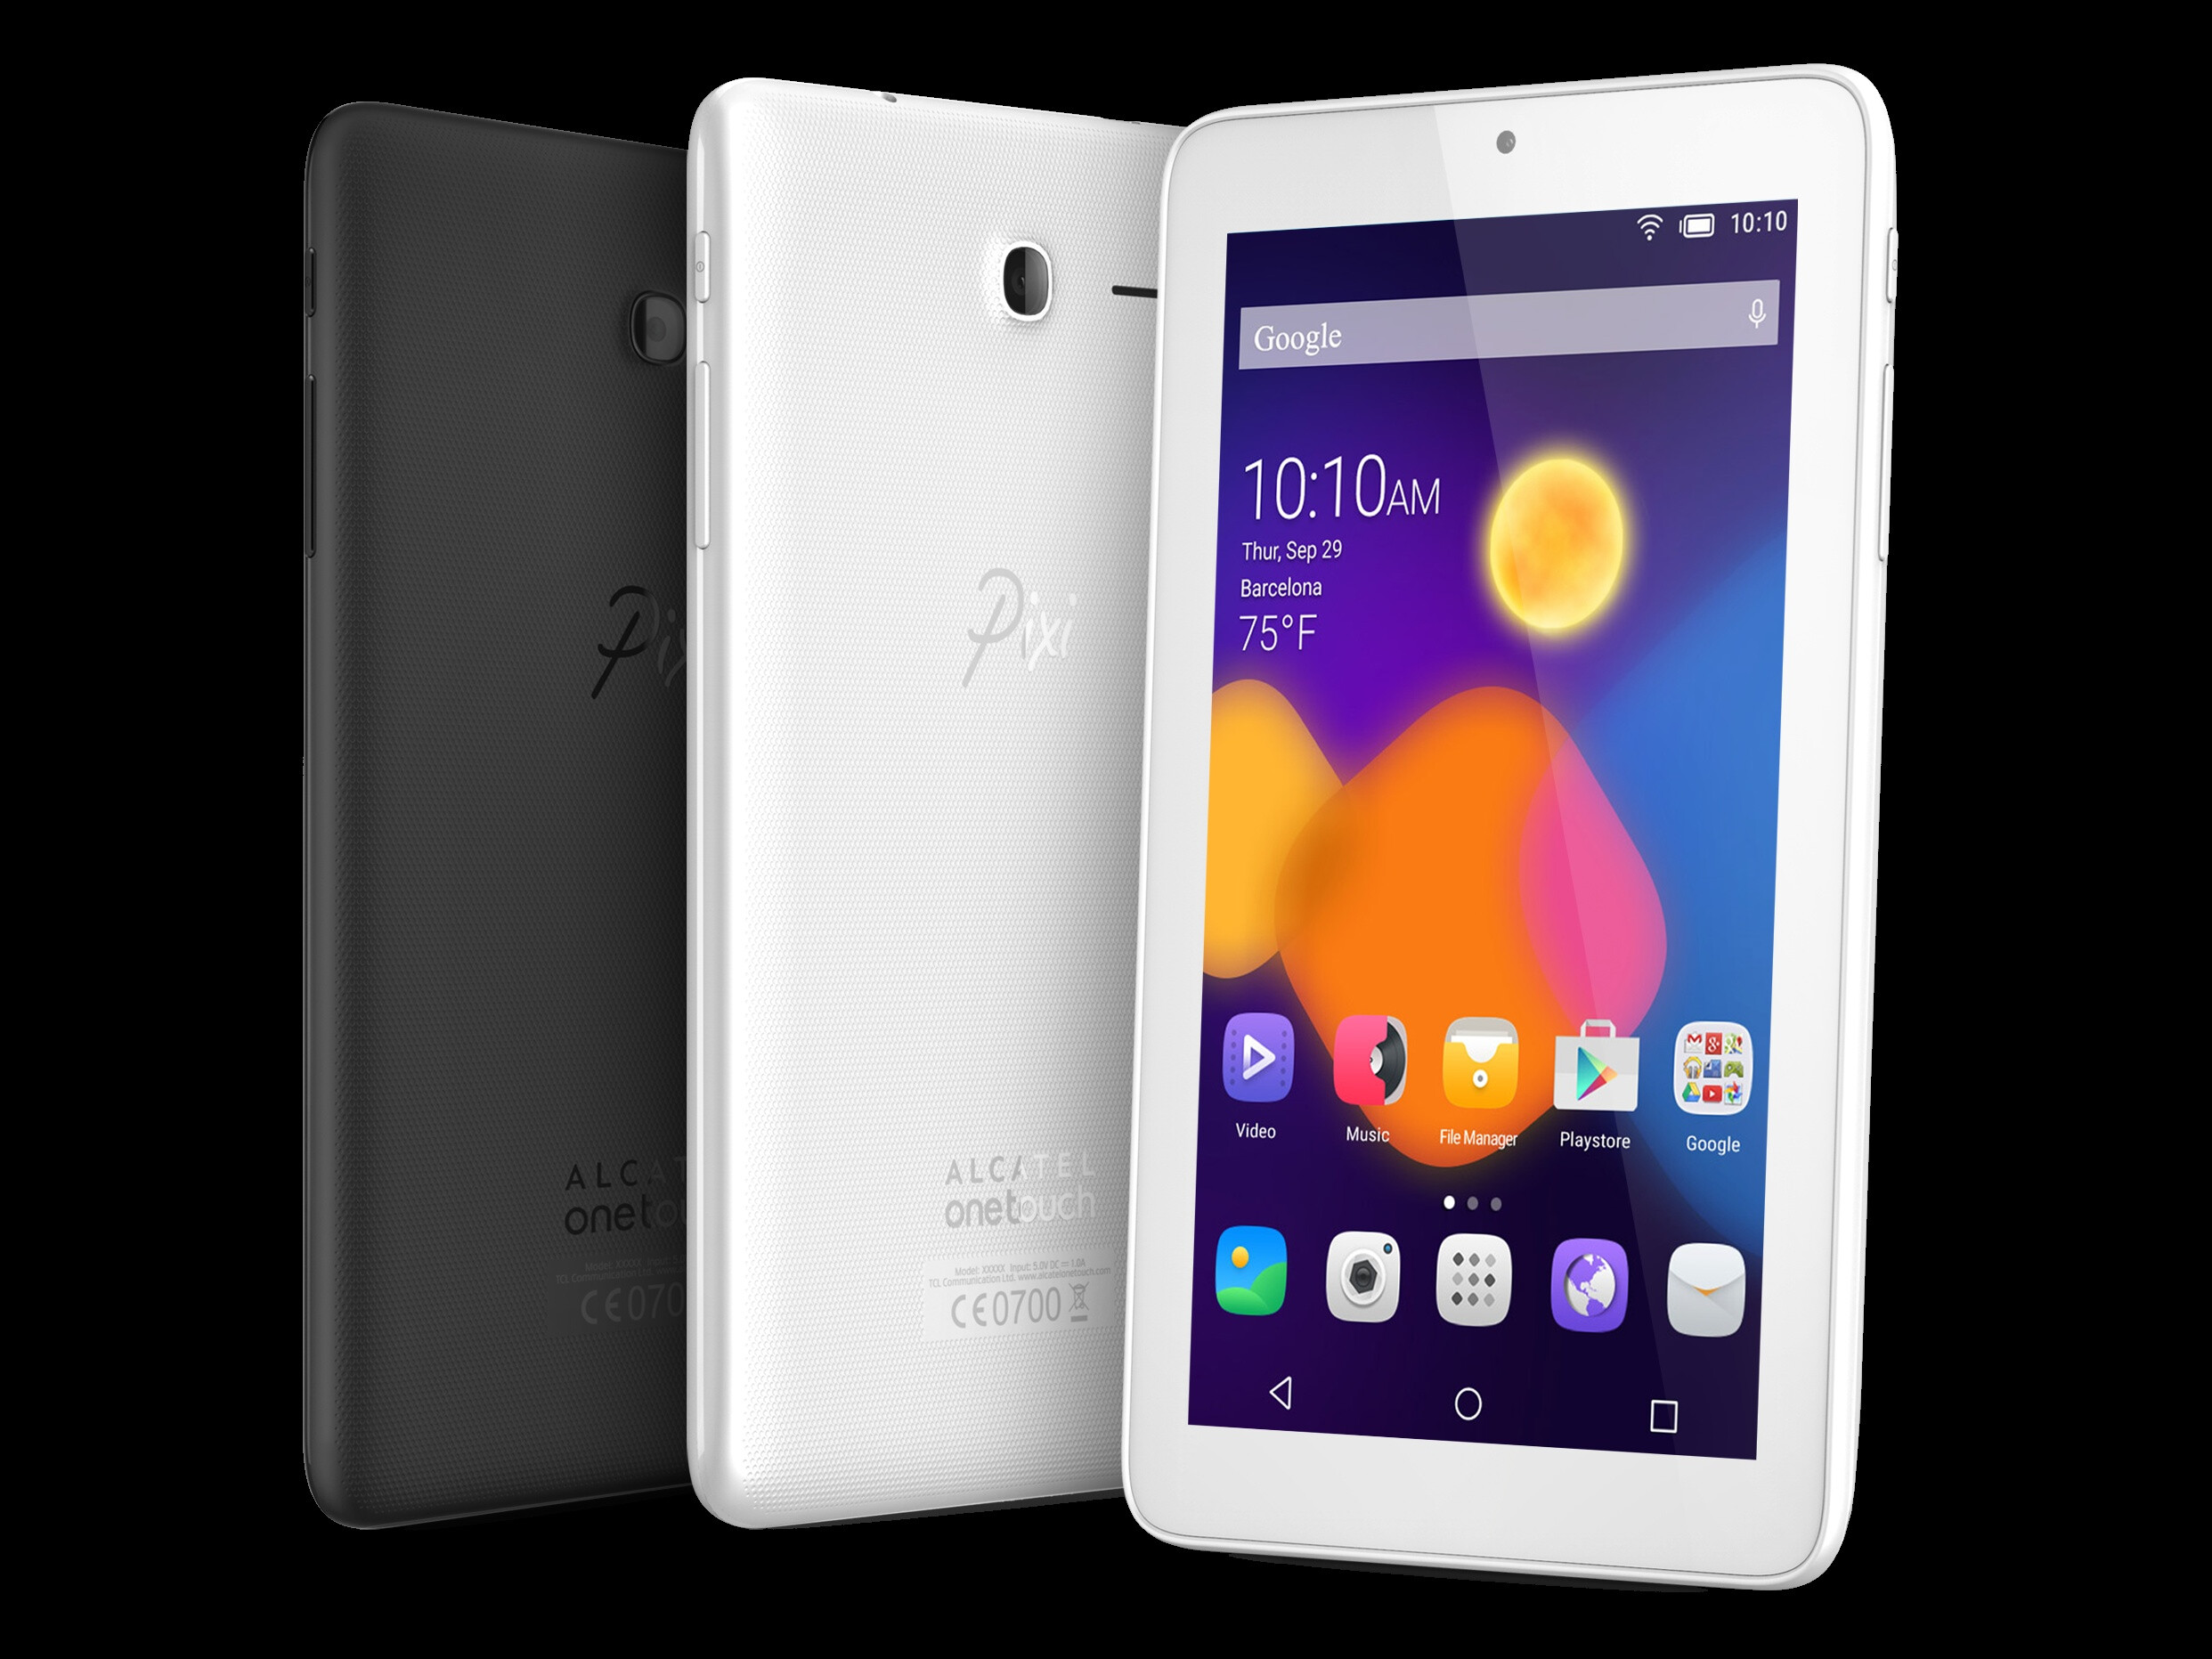 Alcatel OneTouch 3 PIXI: Tablet Android 10 Inch Affordable and with 3G Connection